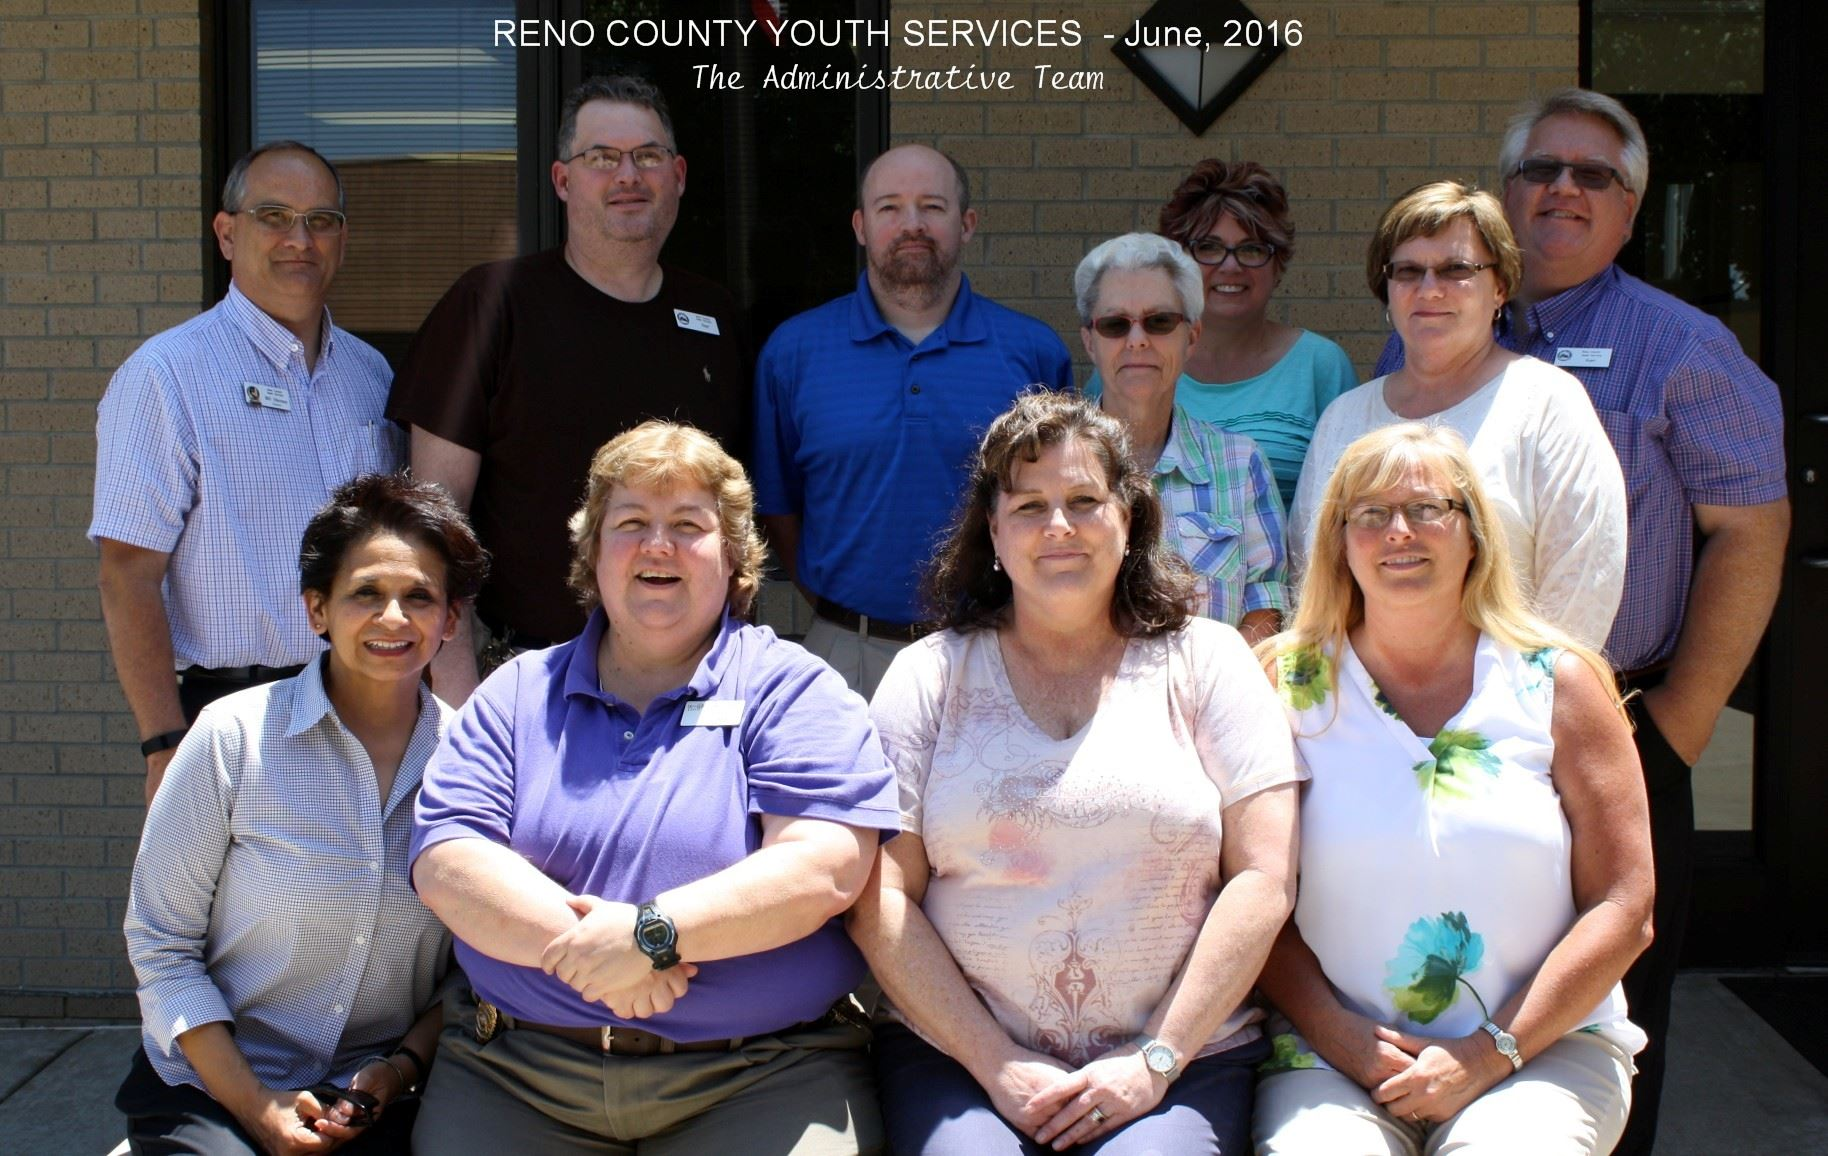 Youth Services Team June 2016